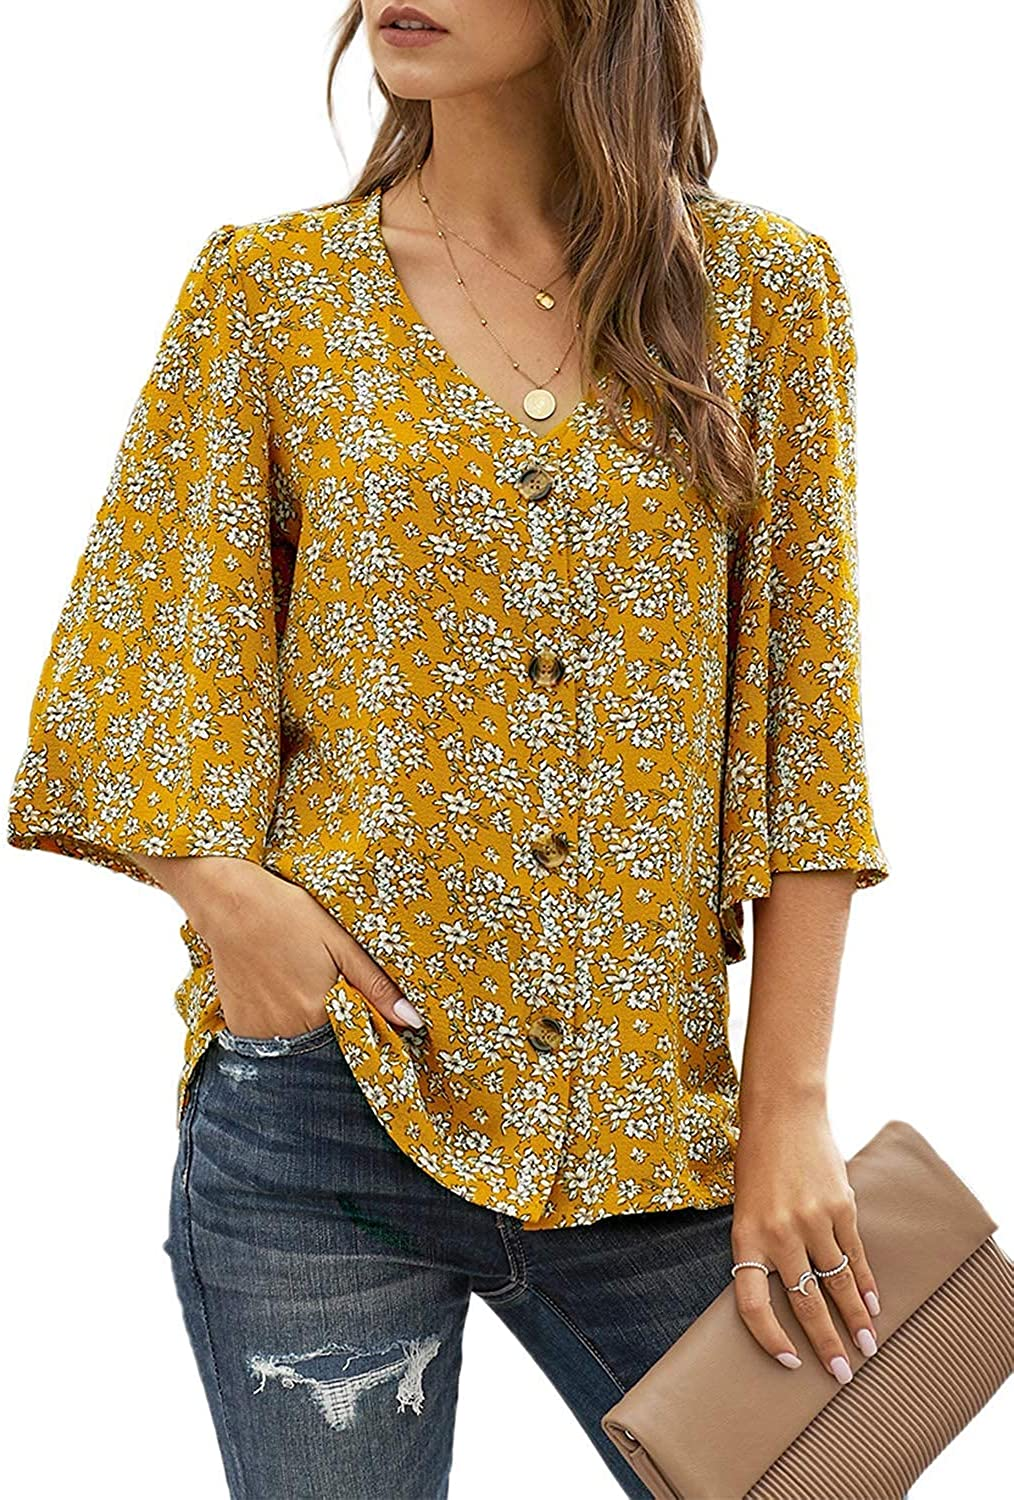 Ecrocoo Women's Casual 3/4 Tiered Bell Sleeve V Neck Print Button Down Loose Tops Blouses Shirt